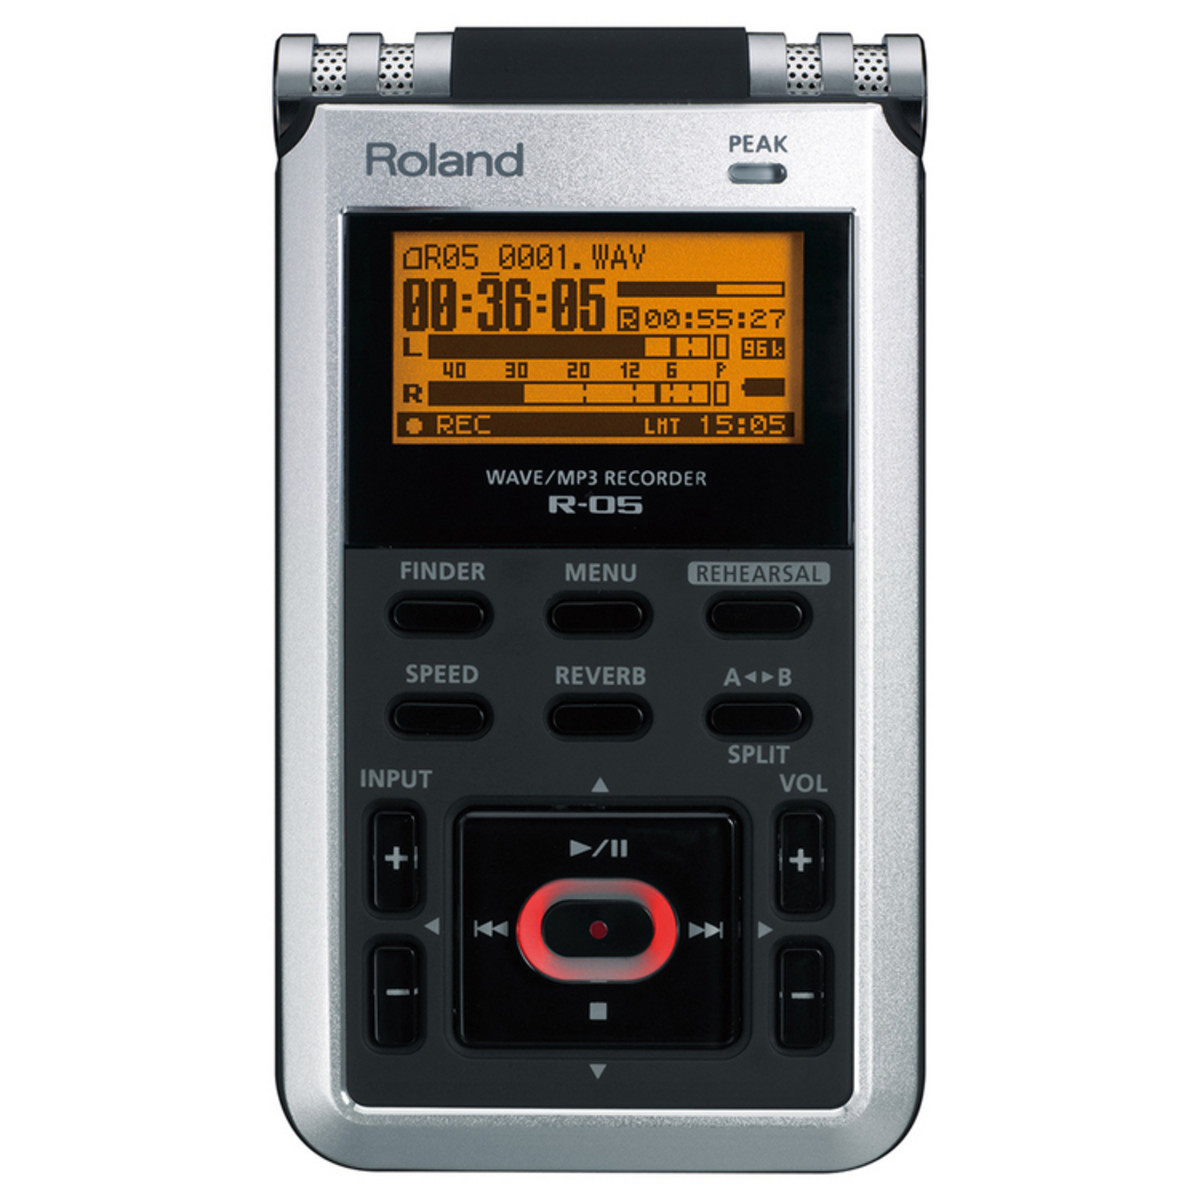 Image of Roland R-05 WAVE/MP3 Audio Recorder